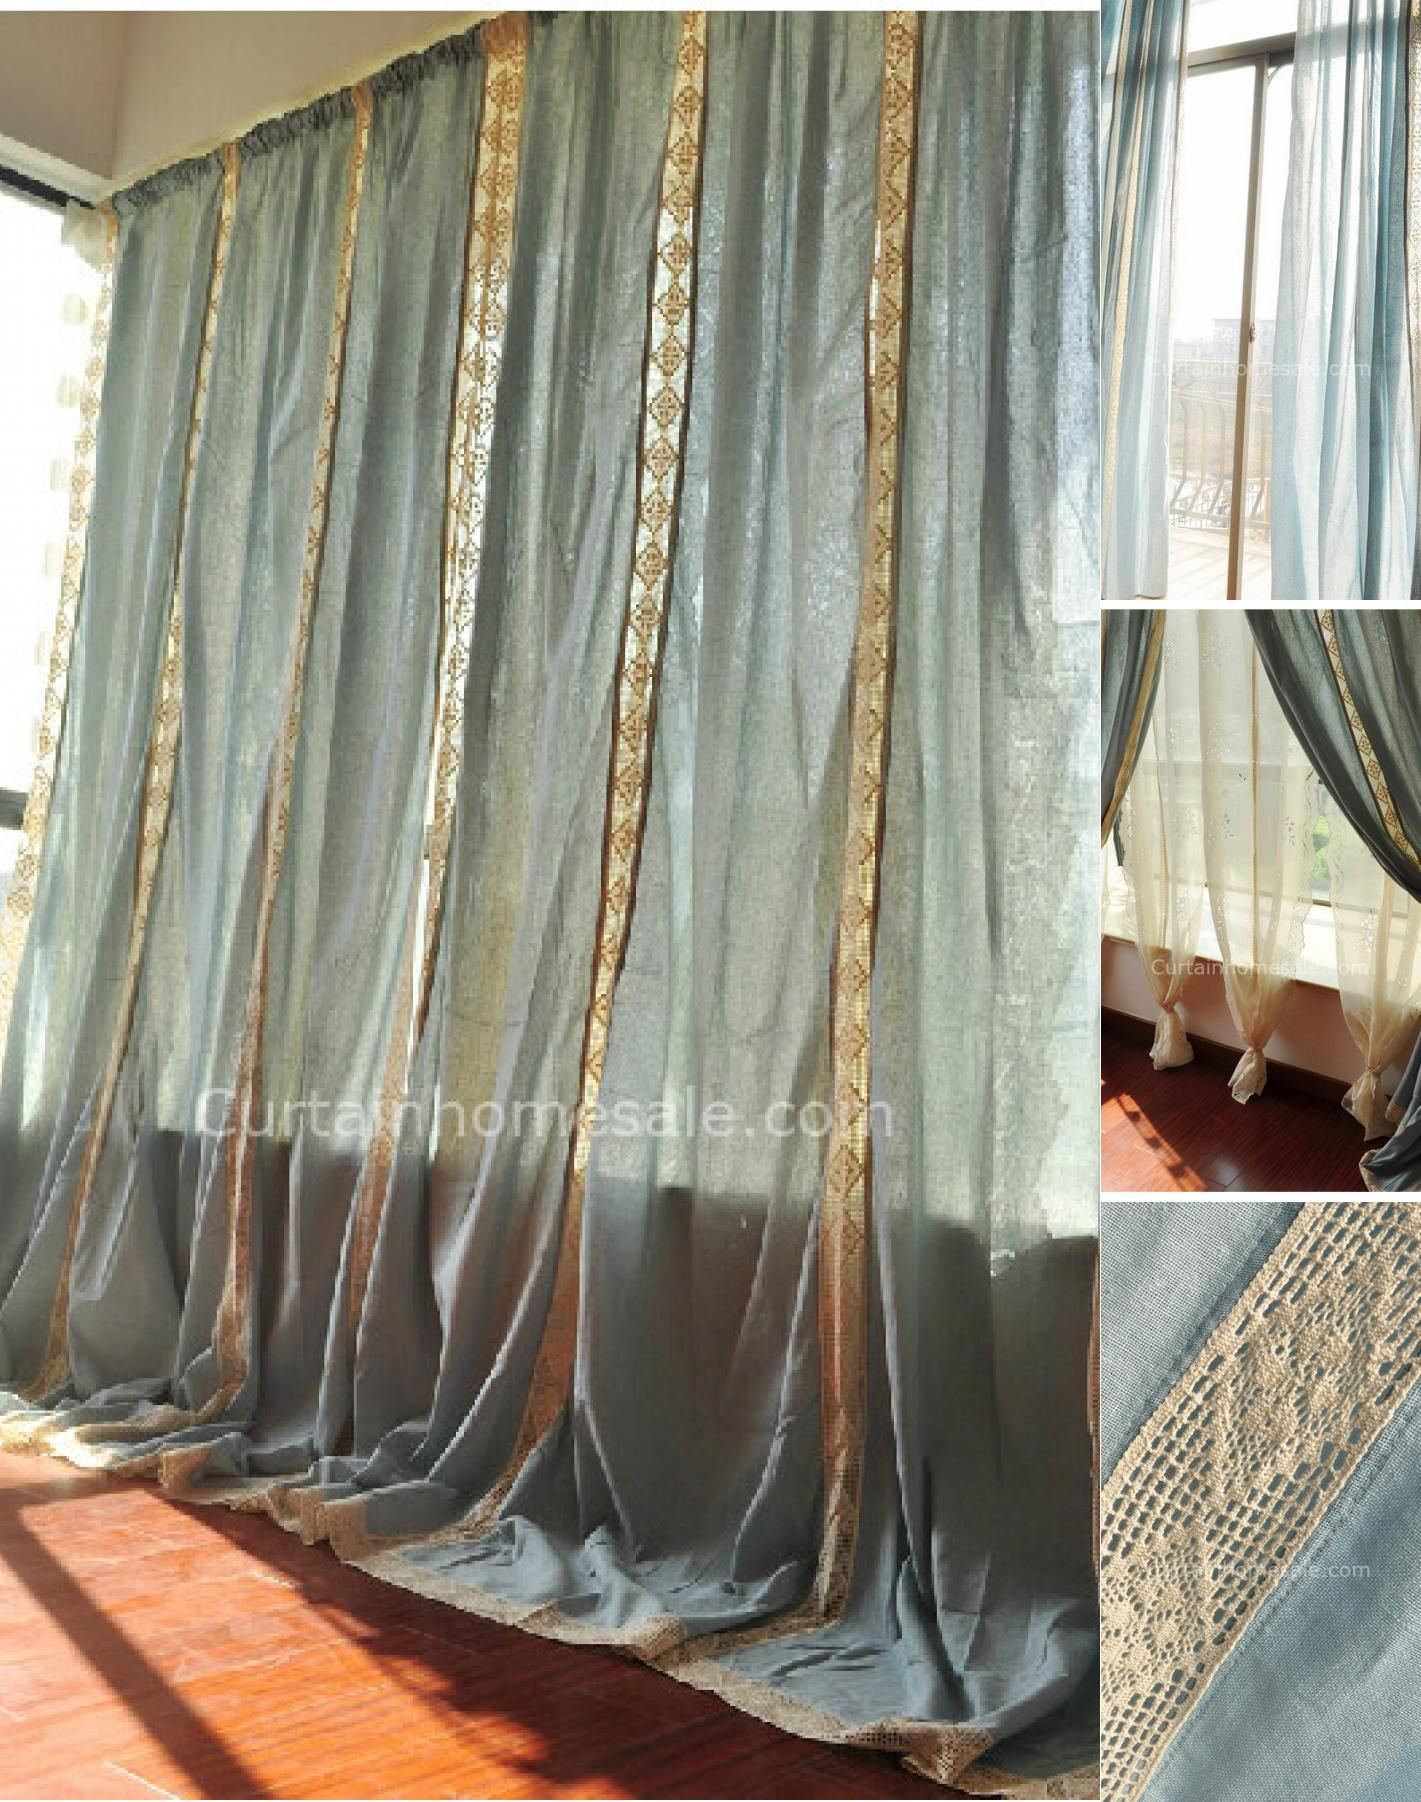 Eco-friendly Big Window Cotton Burlap Curtains of Mediterranean Style